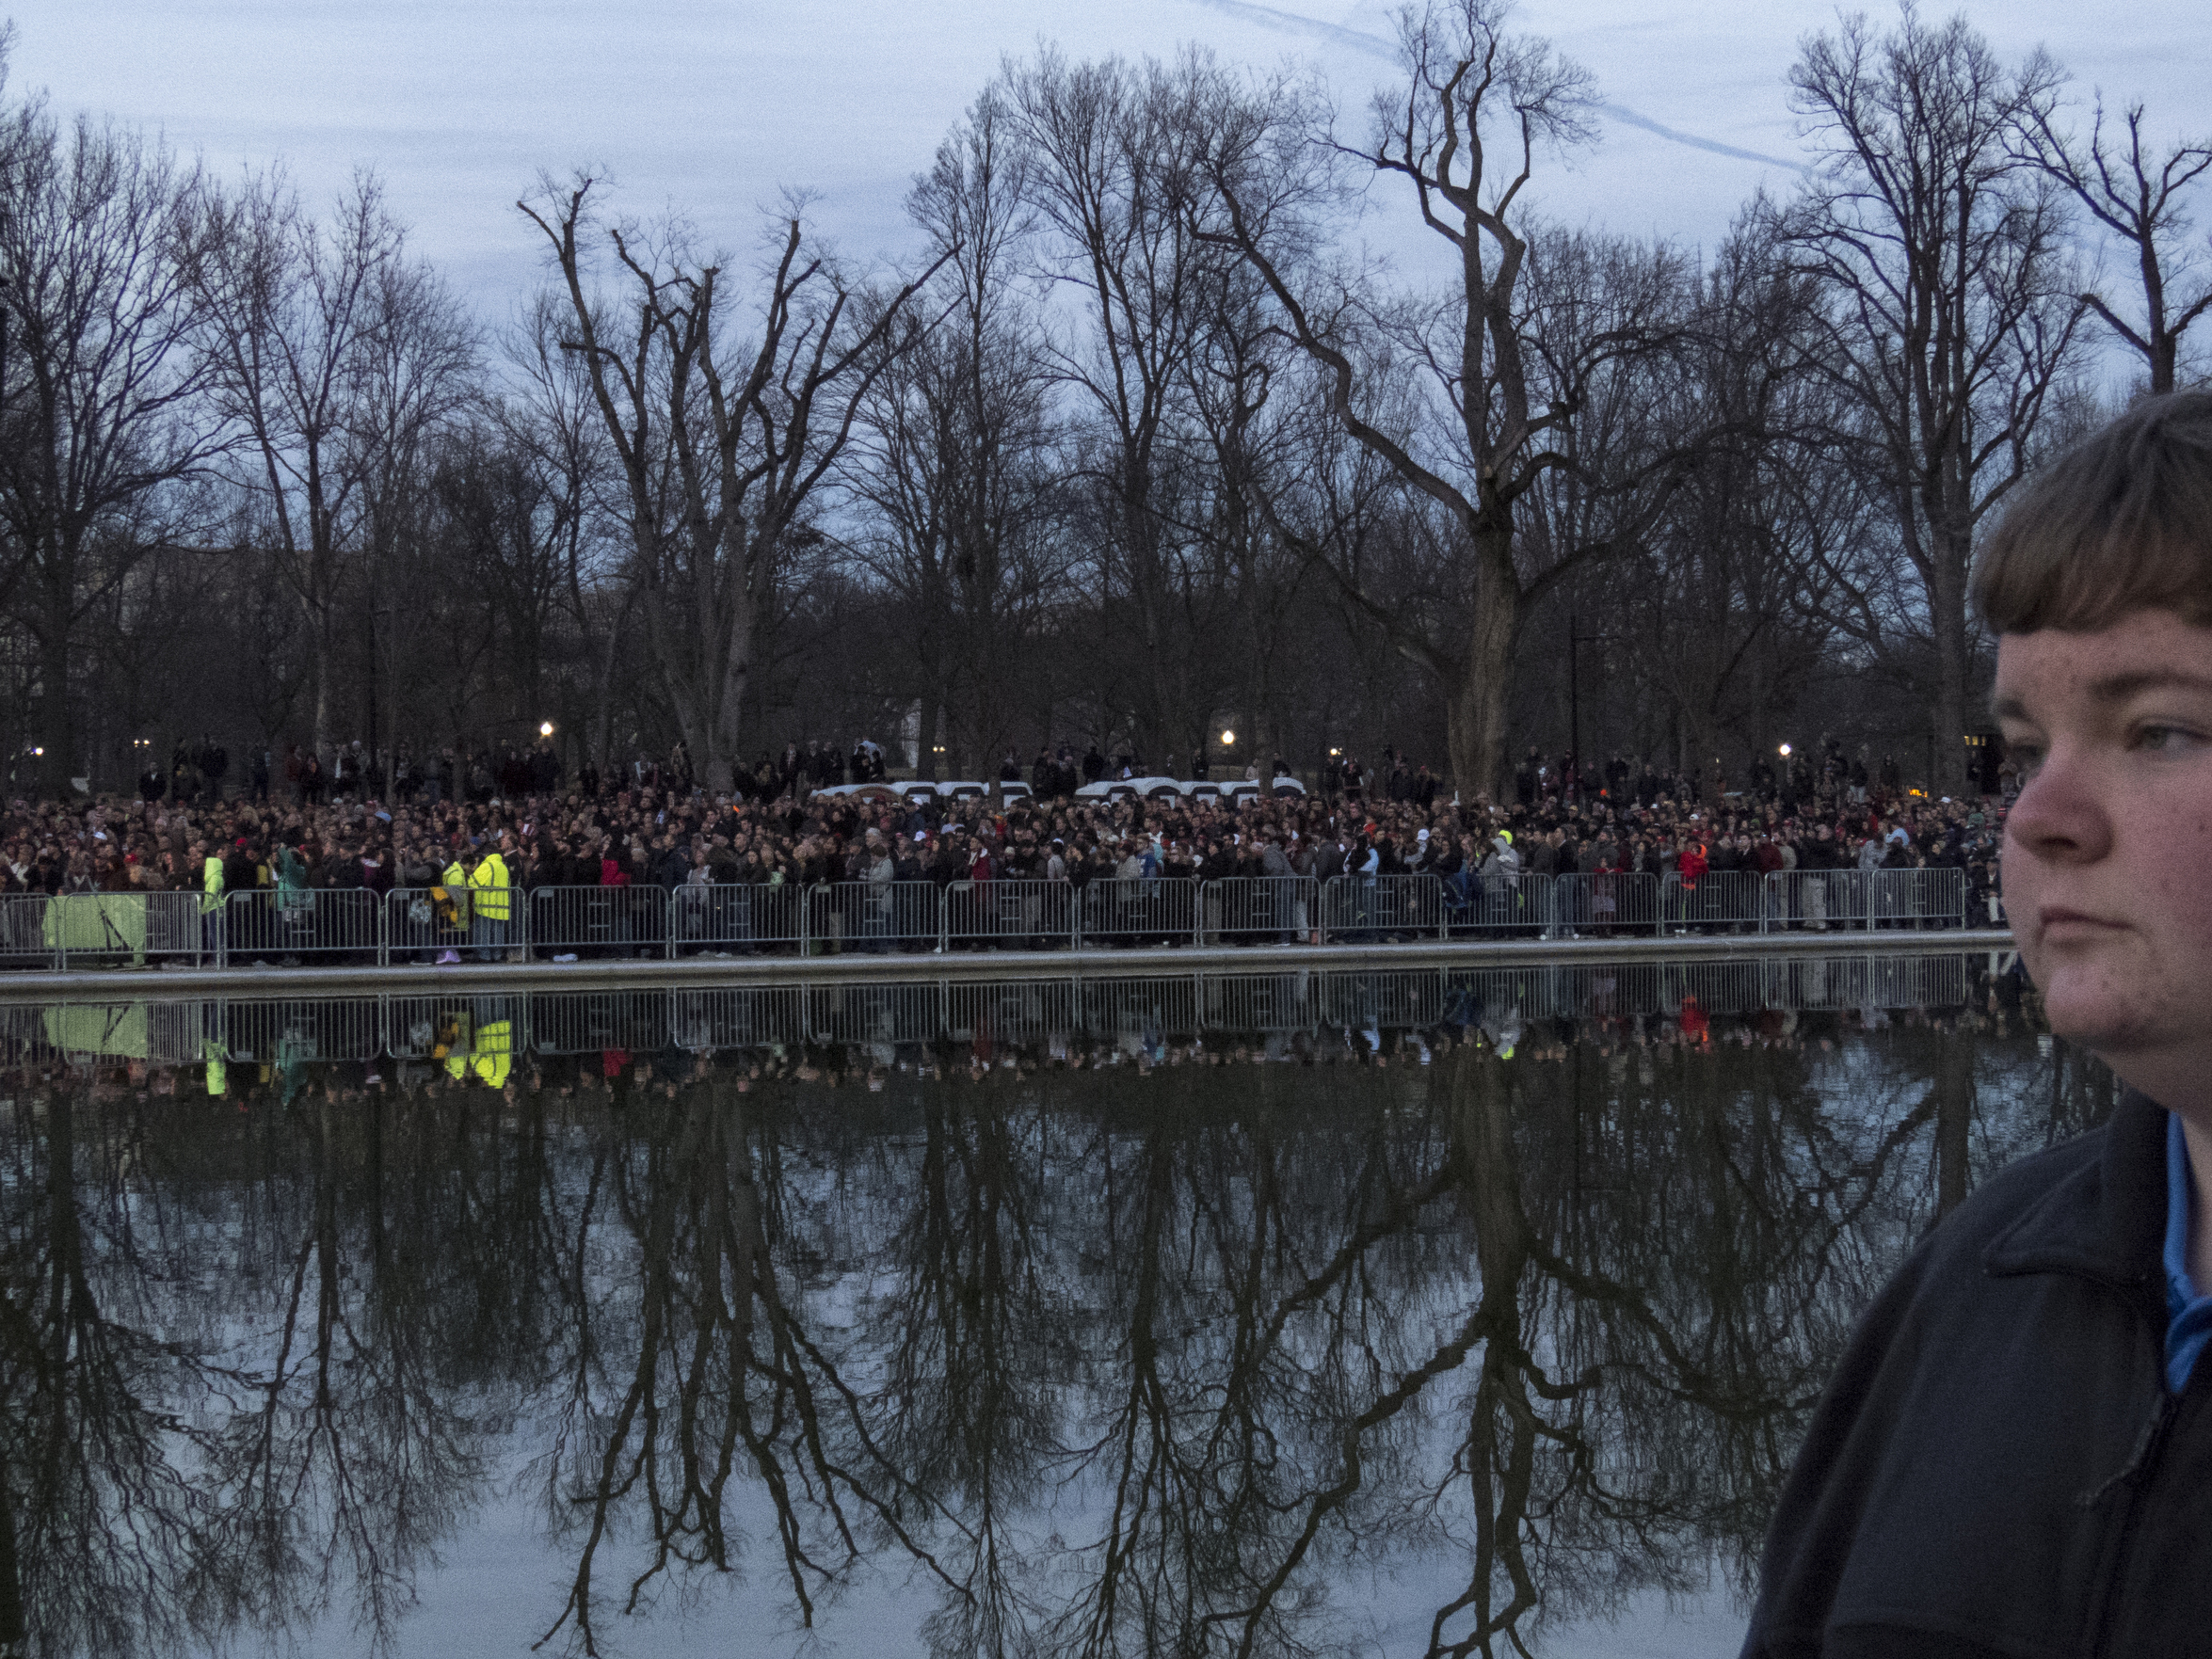 The crowd at the Voices of the People: Make America Great Again Welcome Concert at the Lincoln Memorial in Washington, D.C., on Thursday, Jan. 19, 2017.